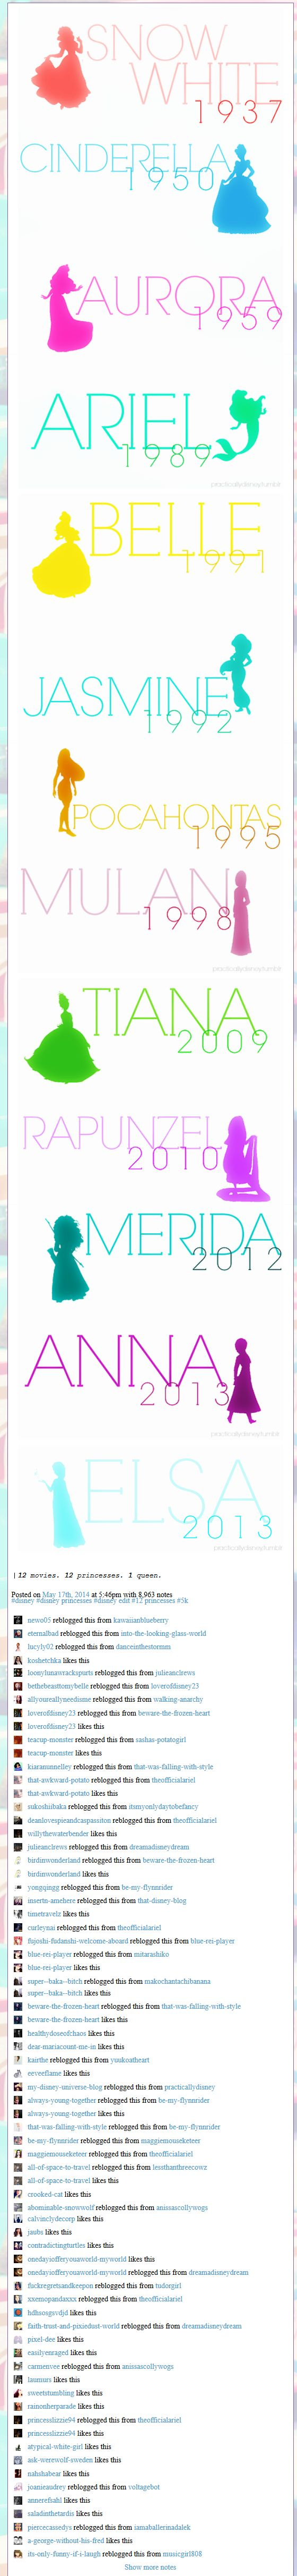 Disney Princess silhouettes + year of release <3